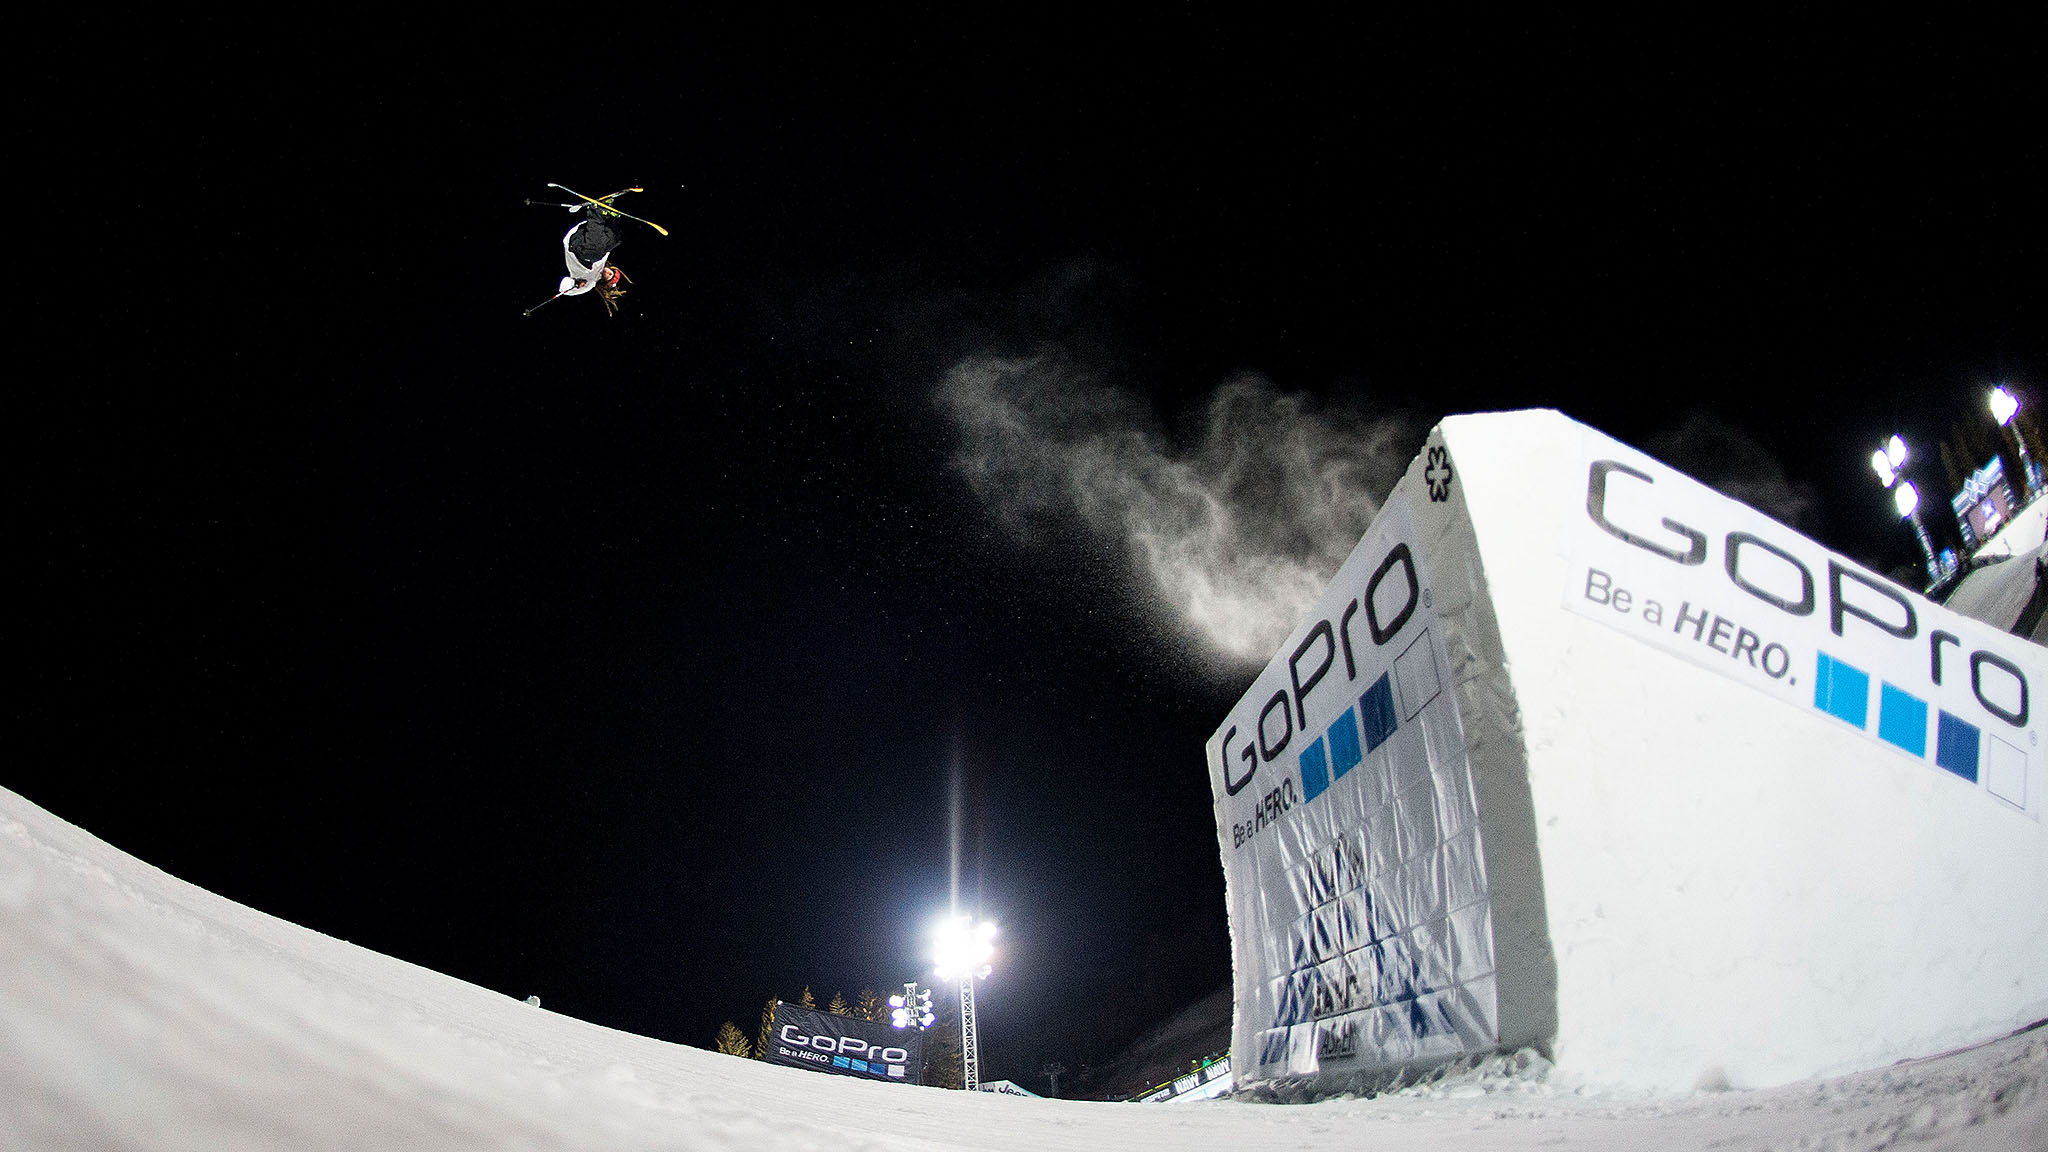 Henrik Harlaut won Ski Big Air with a nose butter triple cork 1620.